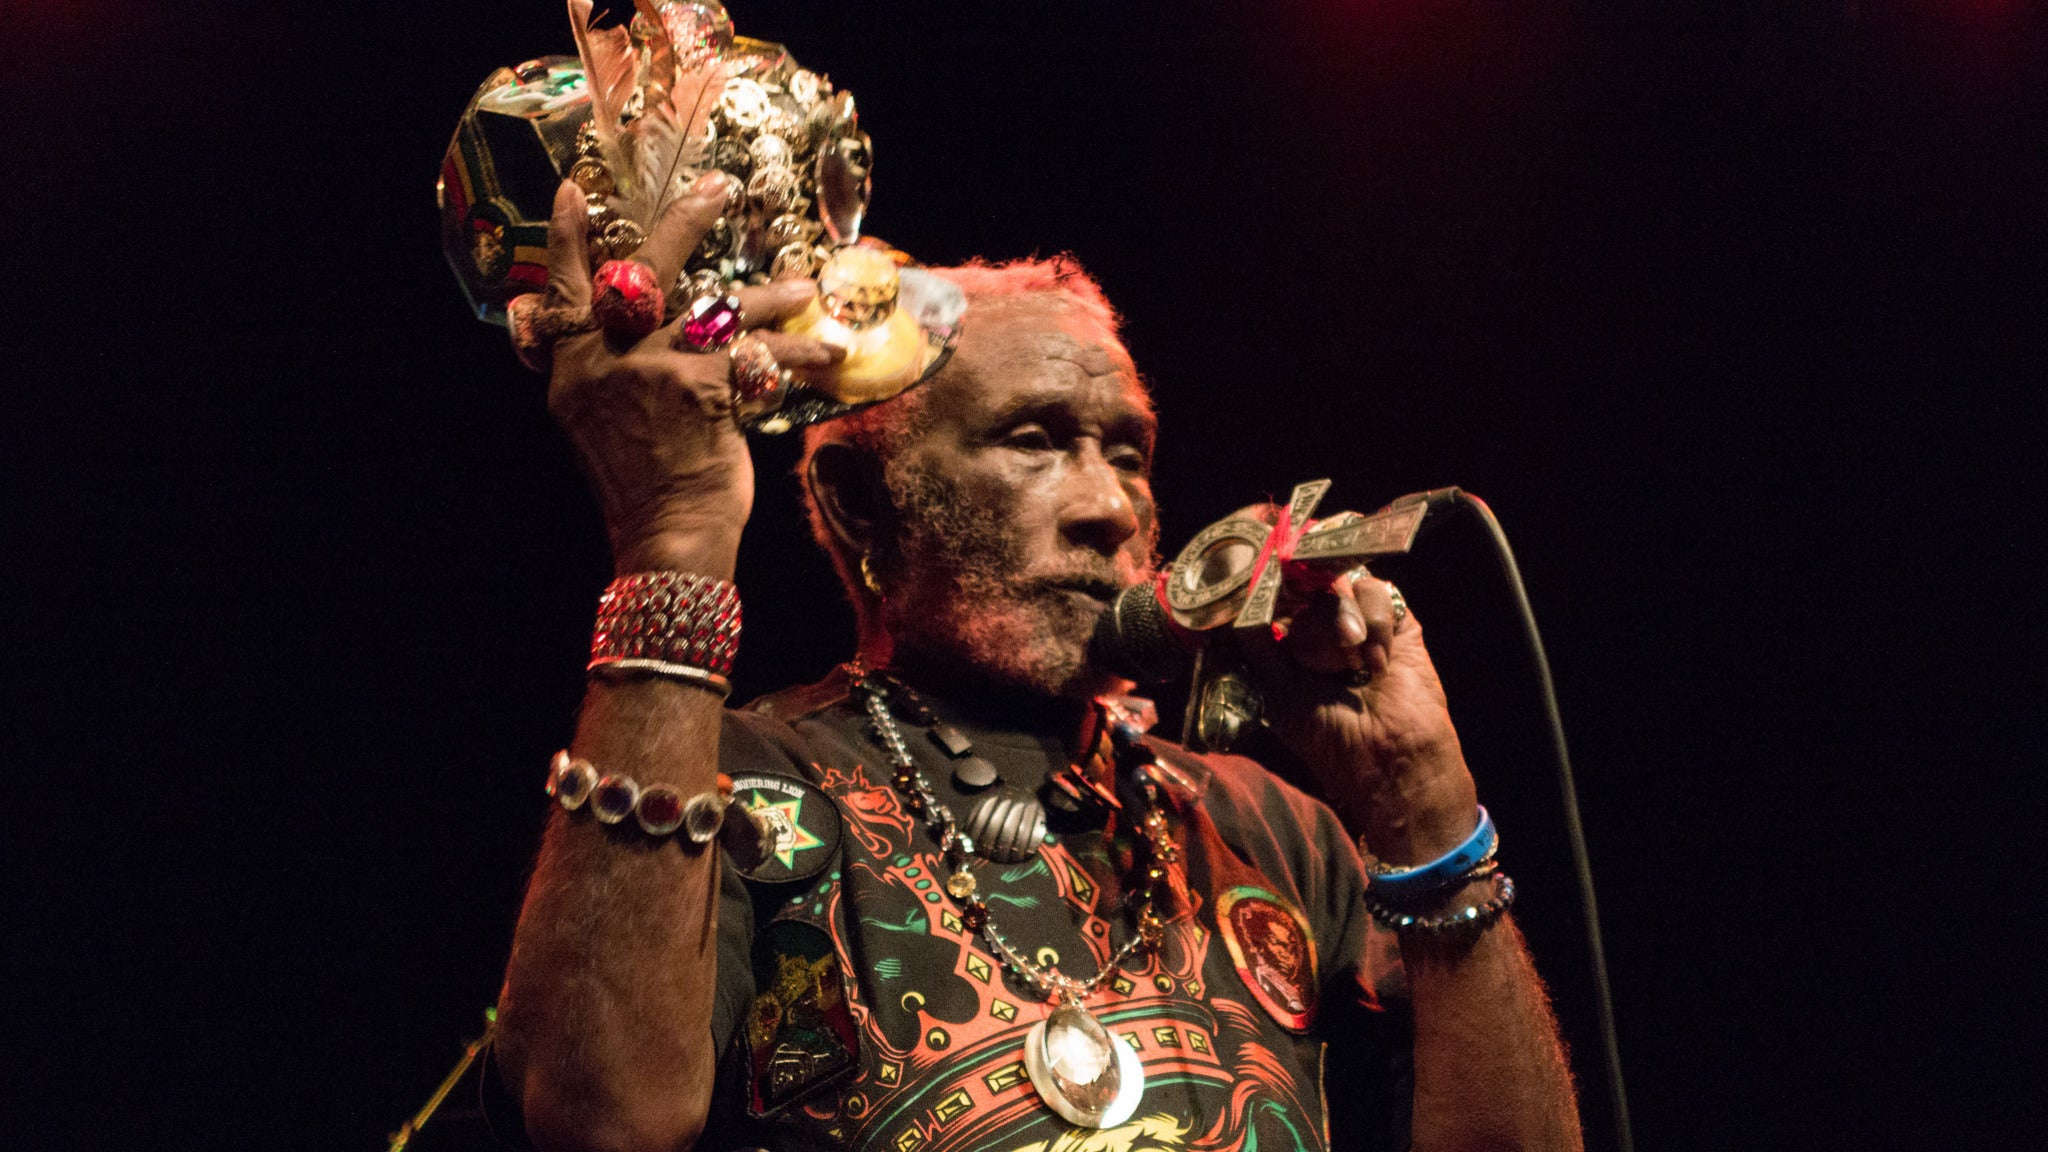 Lee Scratch Perry & Subatomic Sound System at Music Box